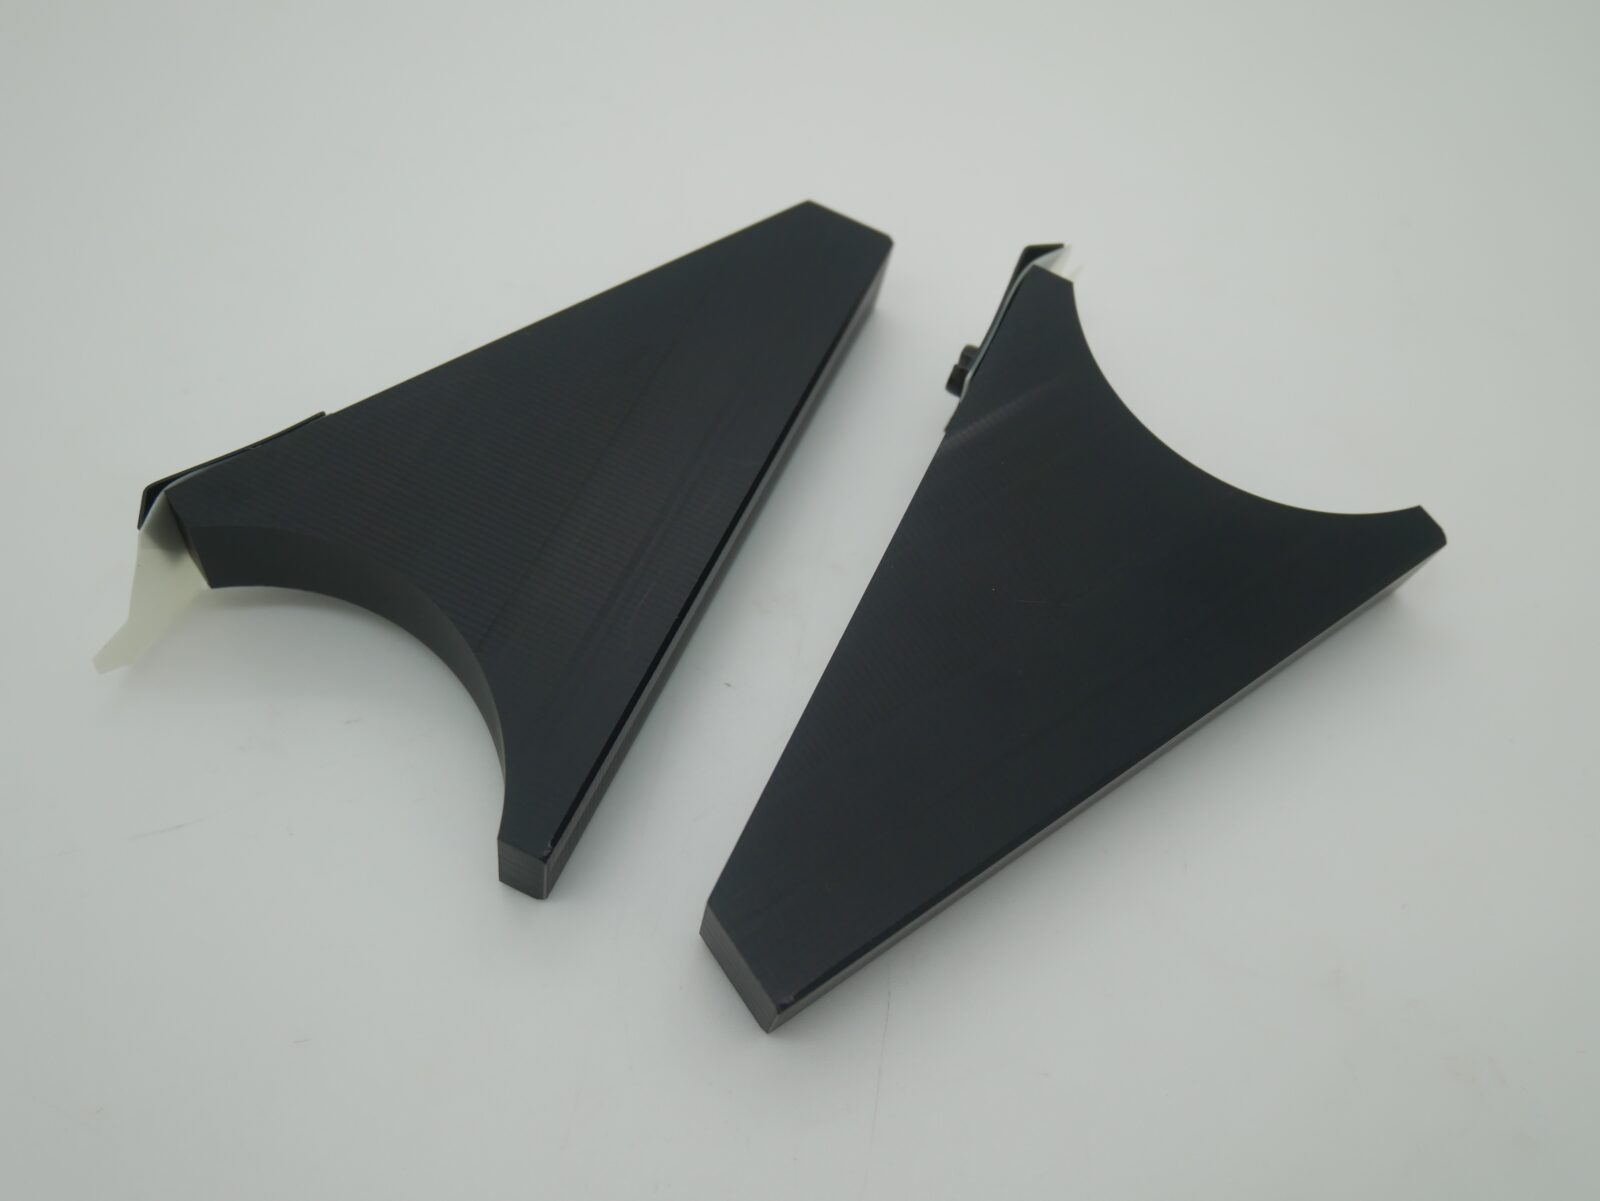 SM52 No CPC Ink Duct Dividers (Pair) HDM: G2.008.309 D/S or G2.008.310 O/S